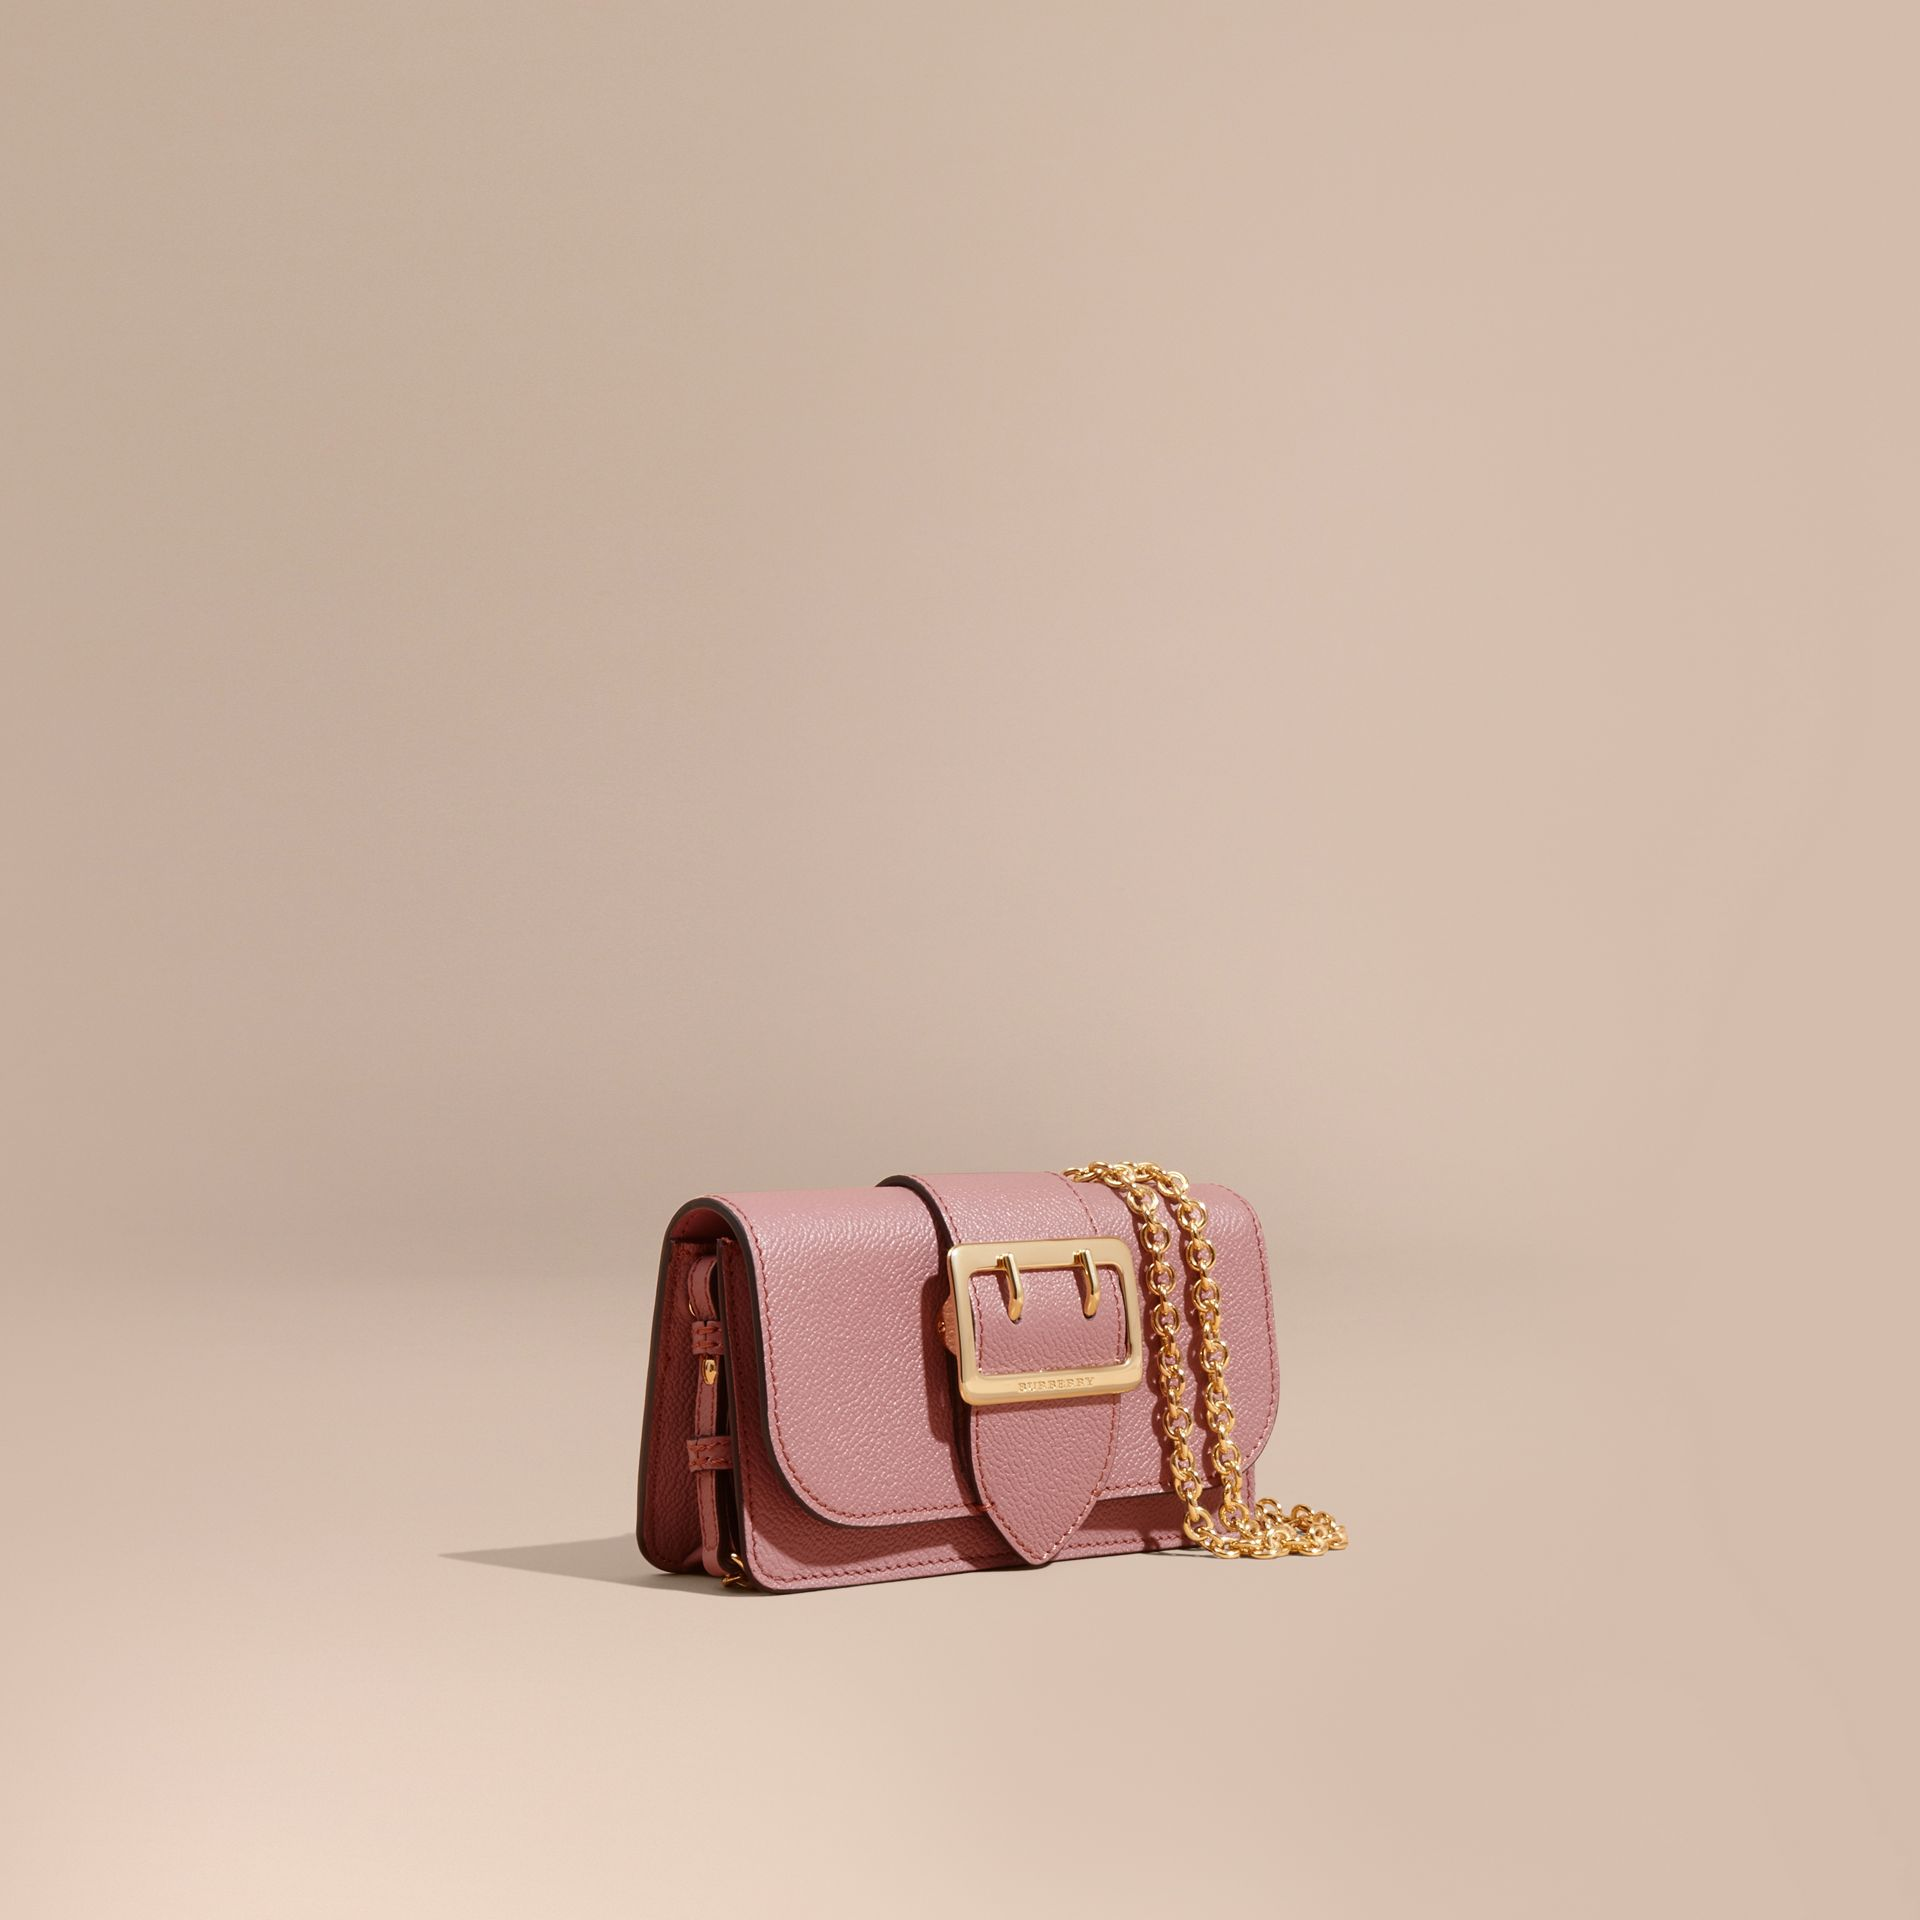 Borsa The Buckle mini in pelle a grana (Rosa Polvere) - Donna | Burberry - immagine della galleria 1